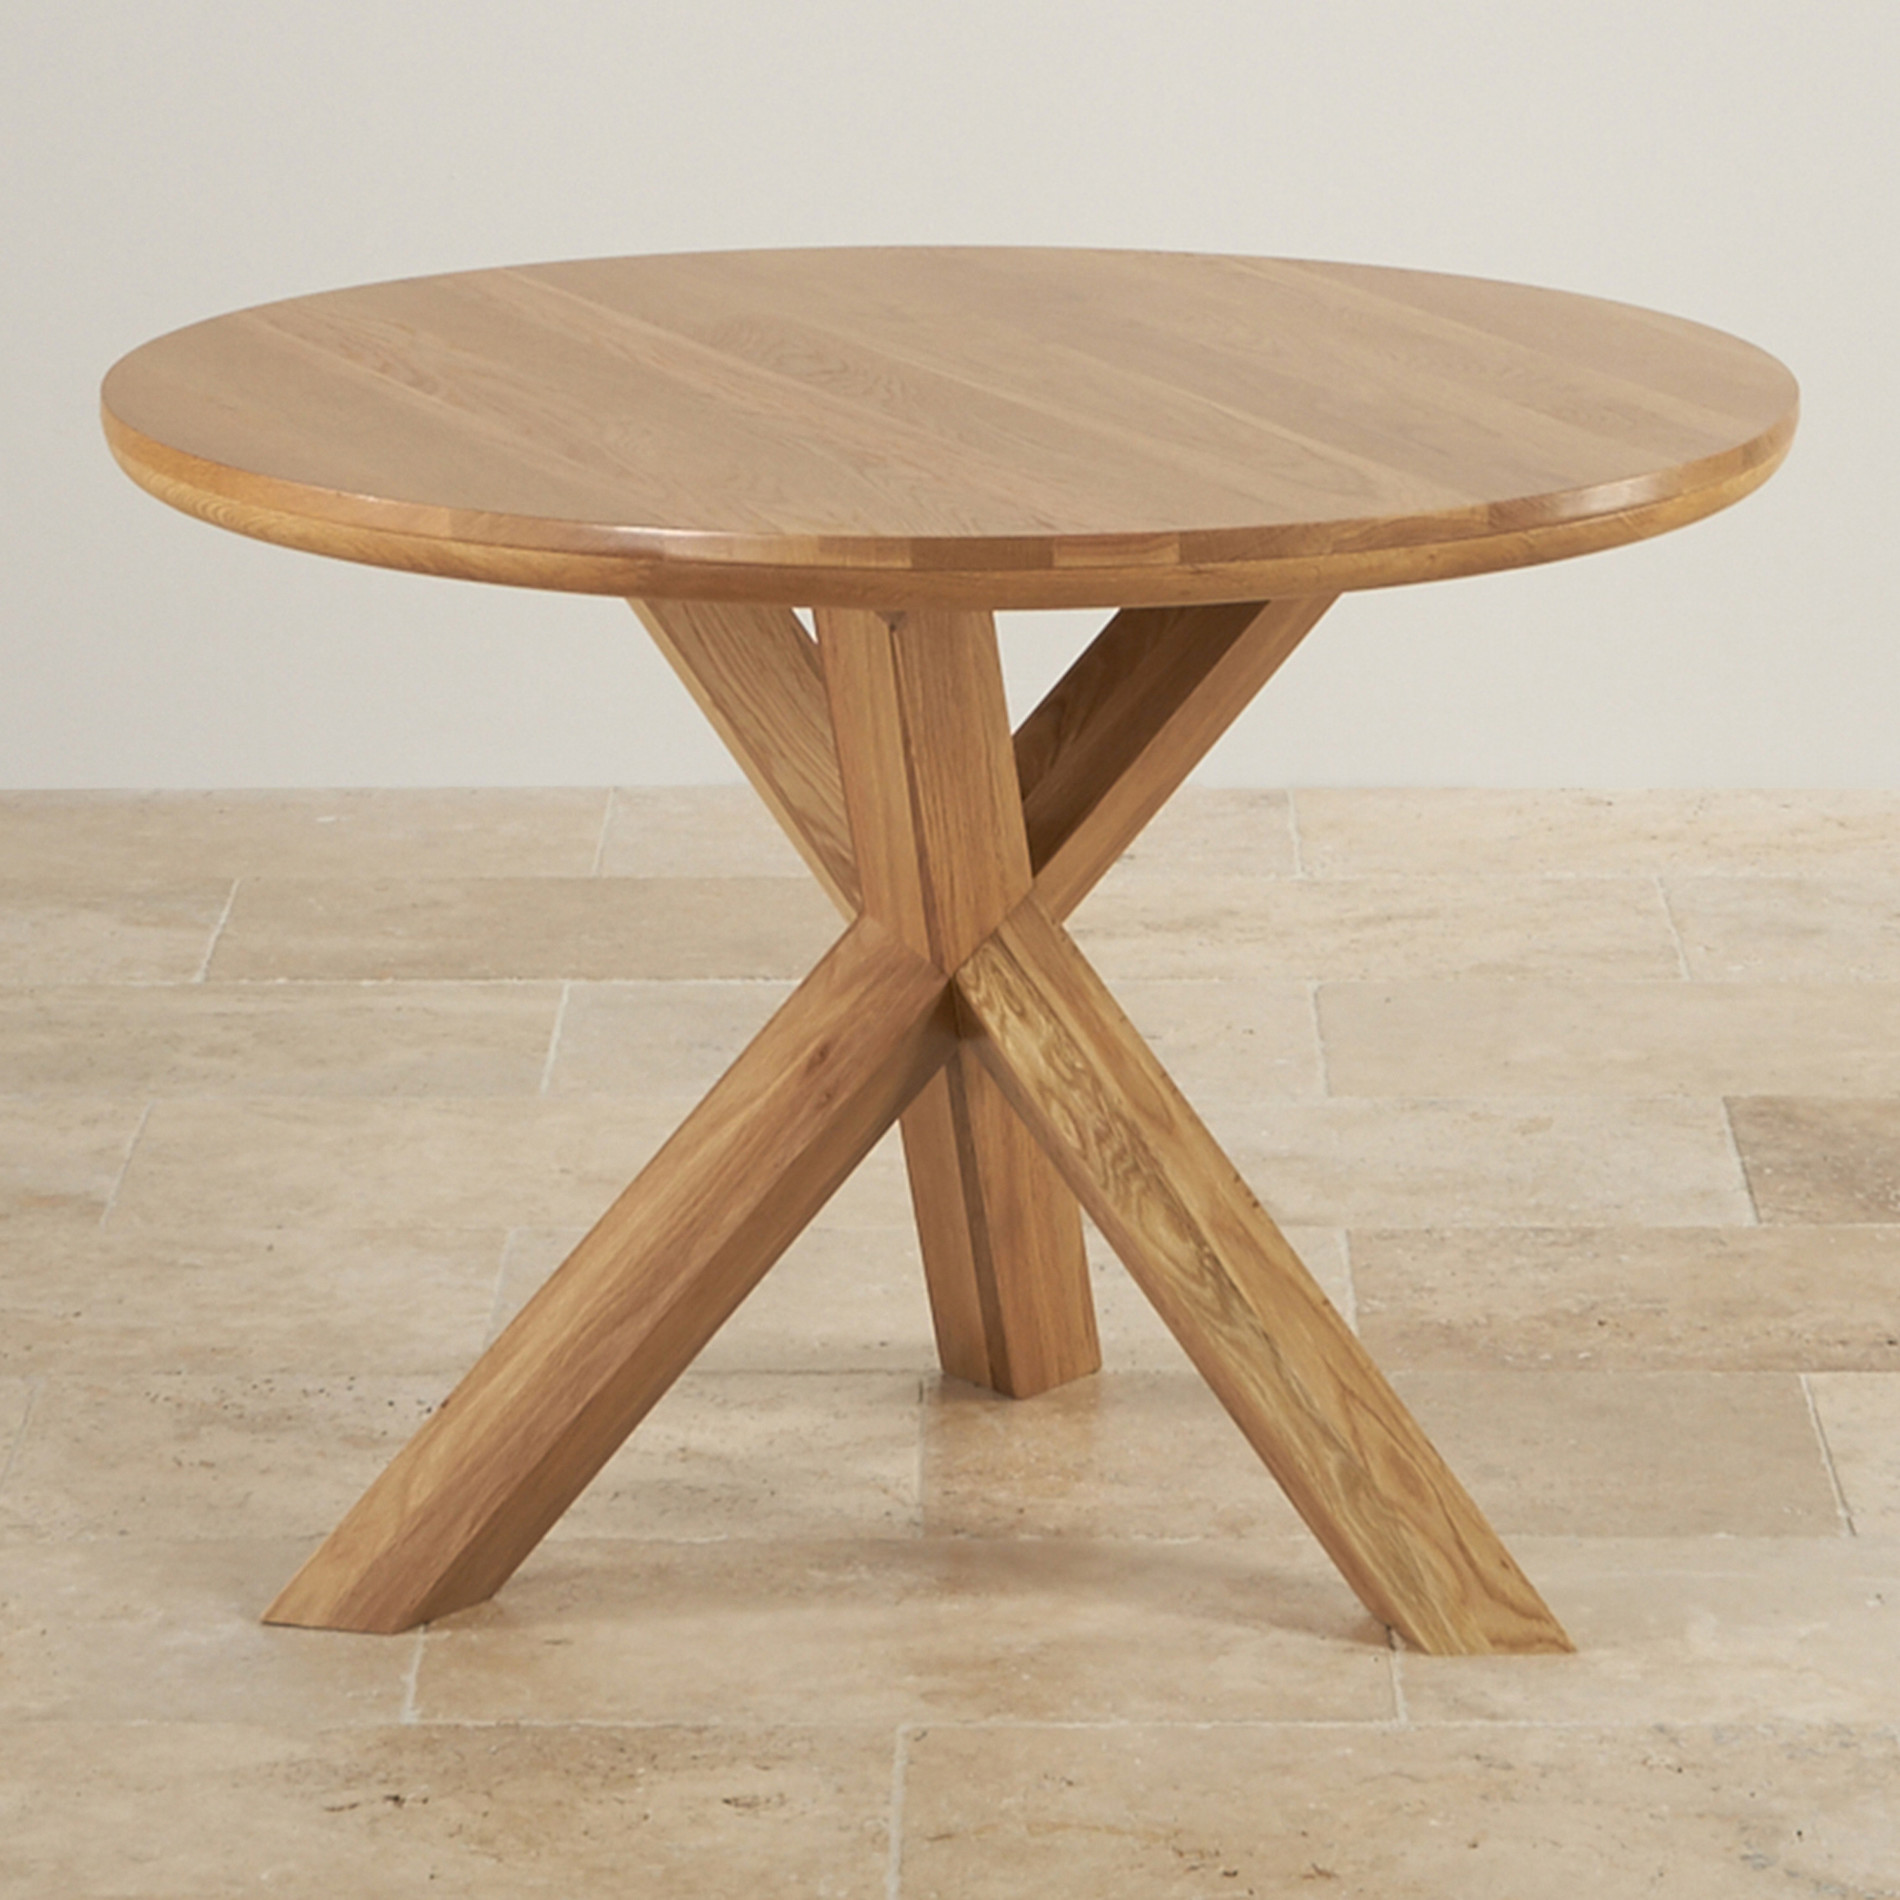 you natural wood dining room table first step will